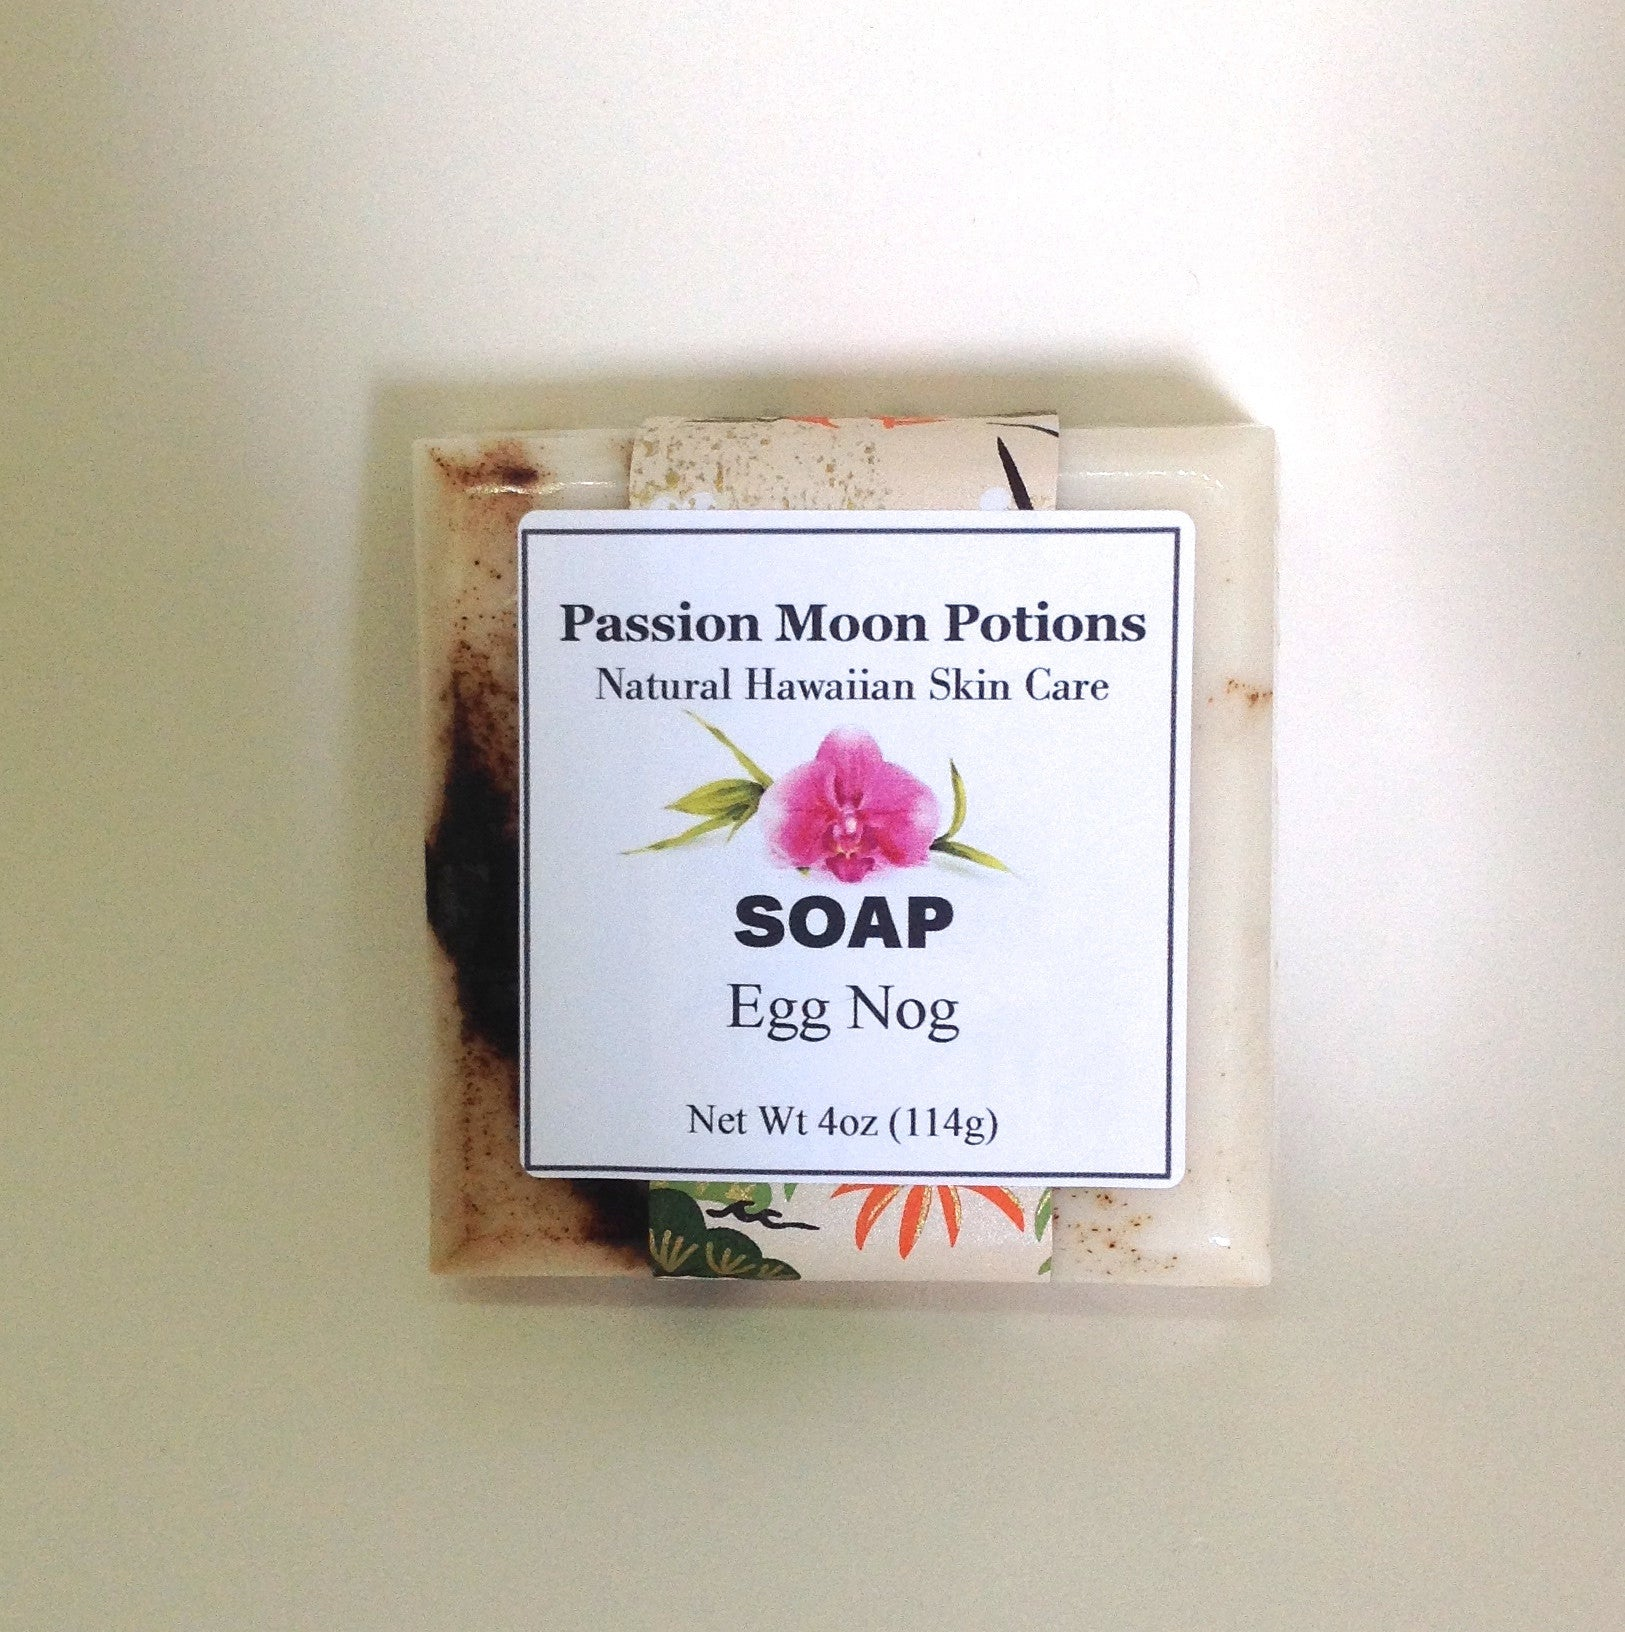 Egg Nog Soap - Passion Moon Potions - 1